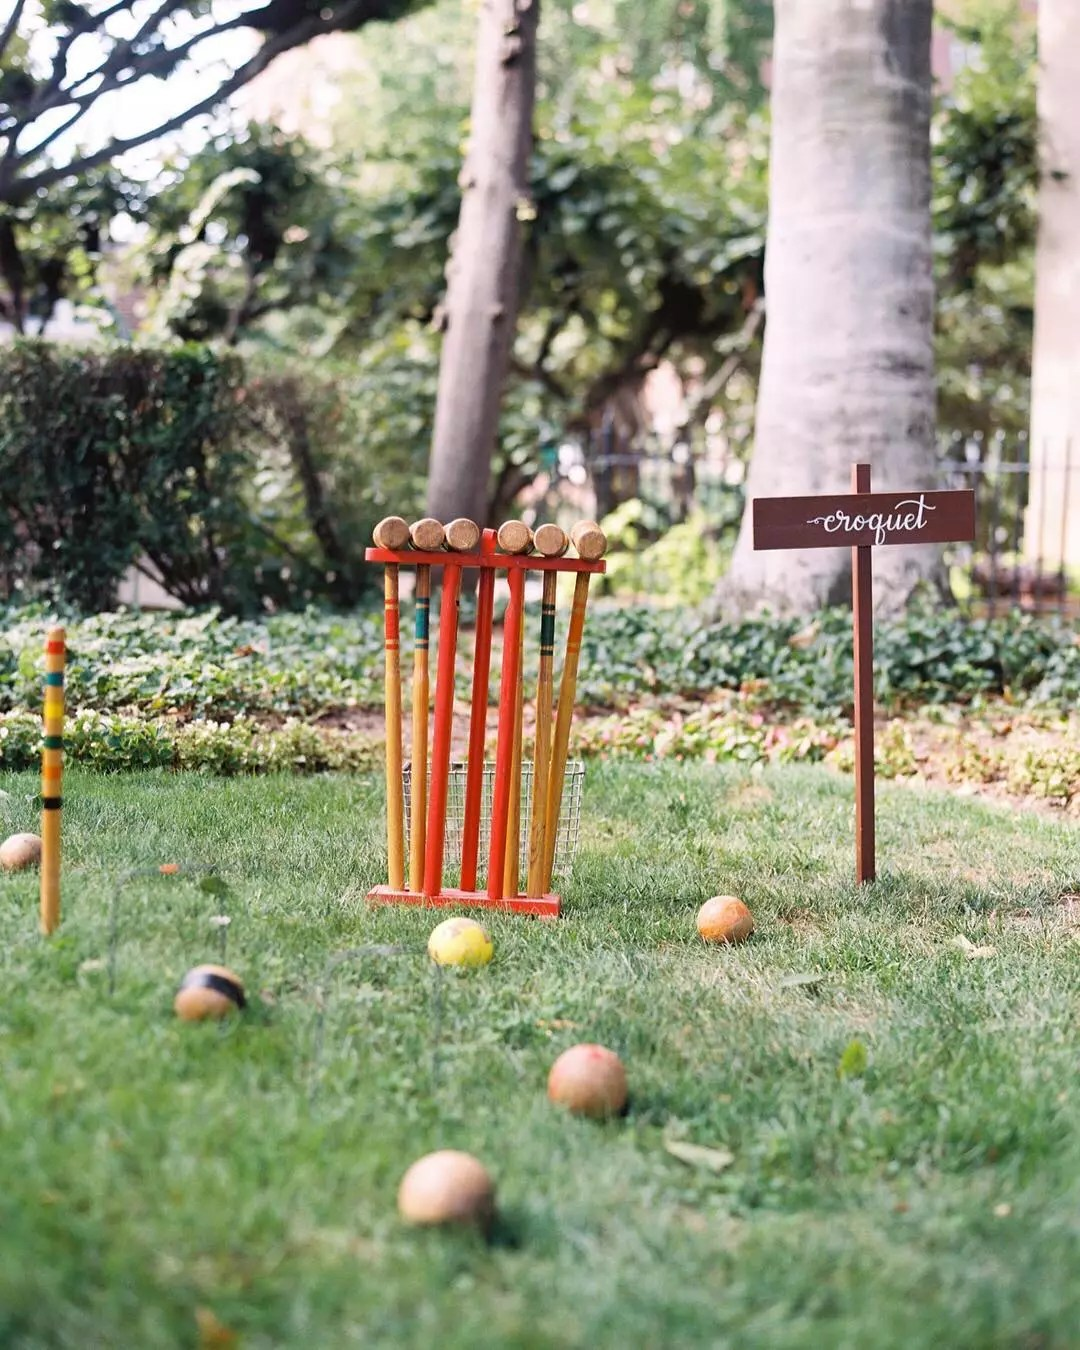 Croquet in backyard. Photo by Instagram user @laurynprattes